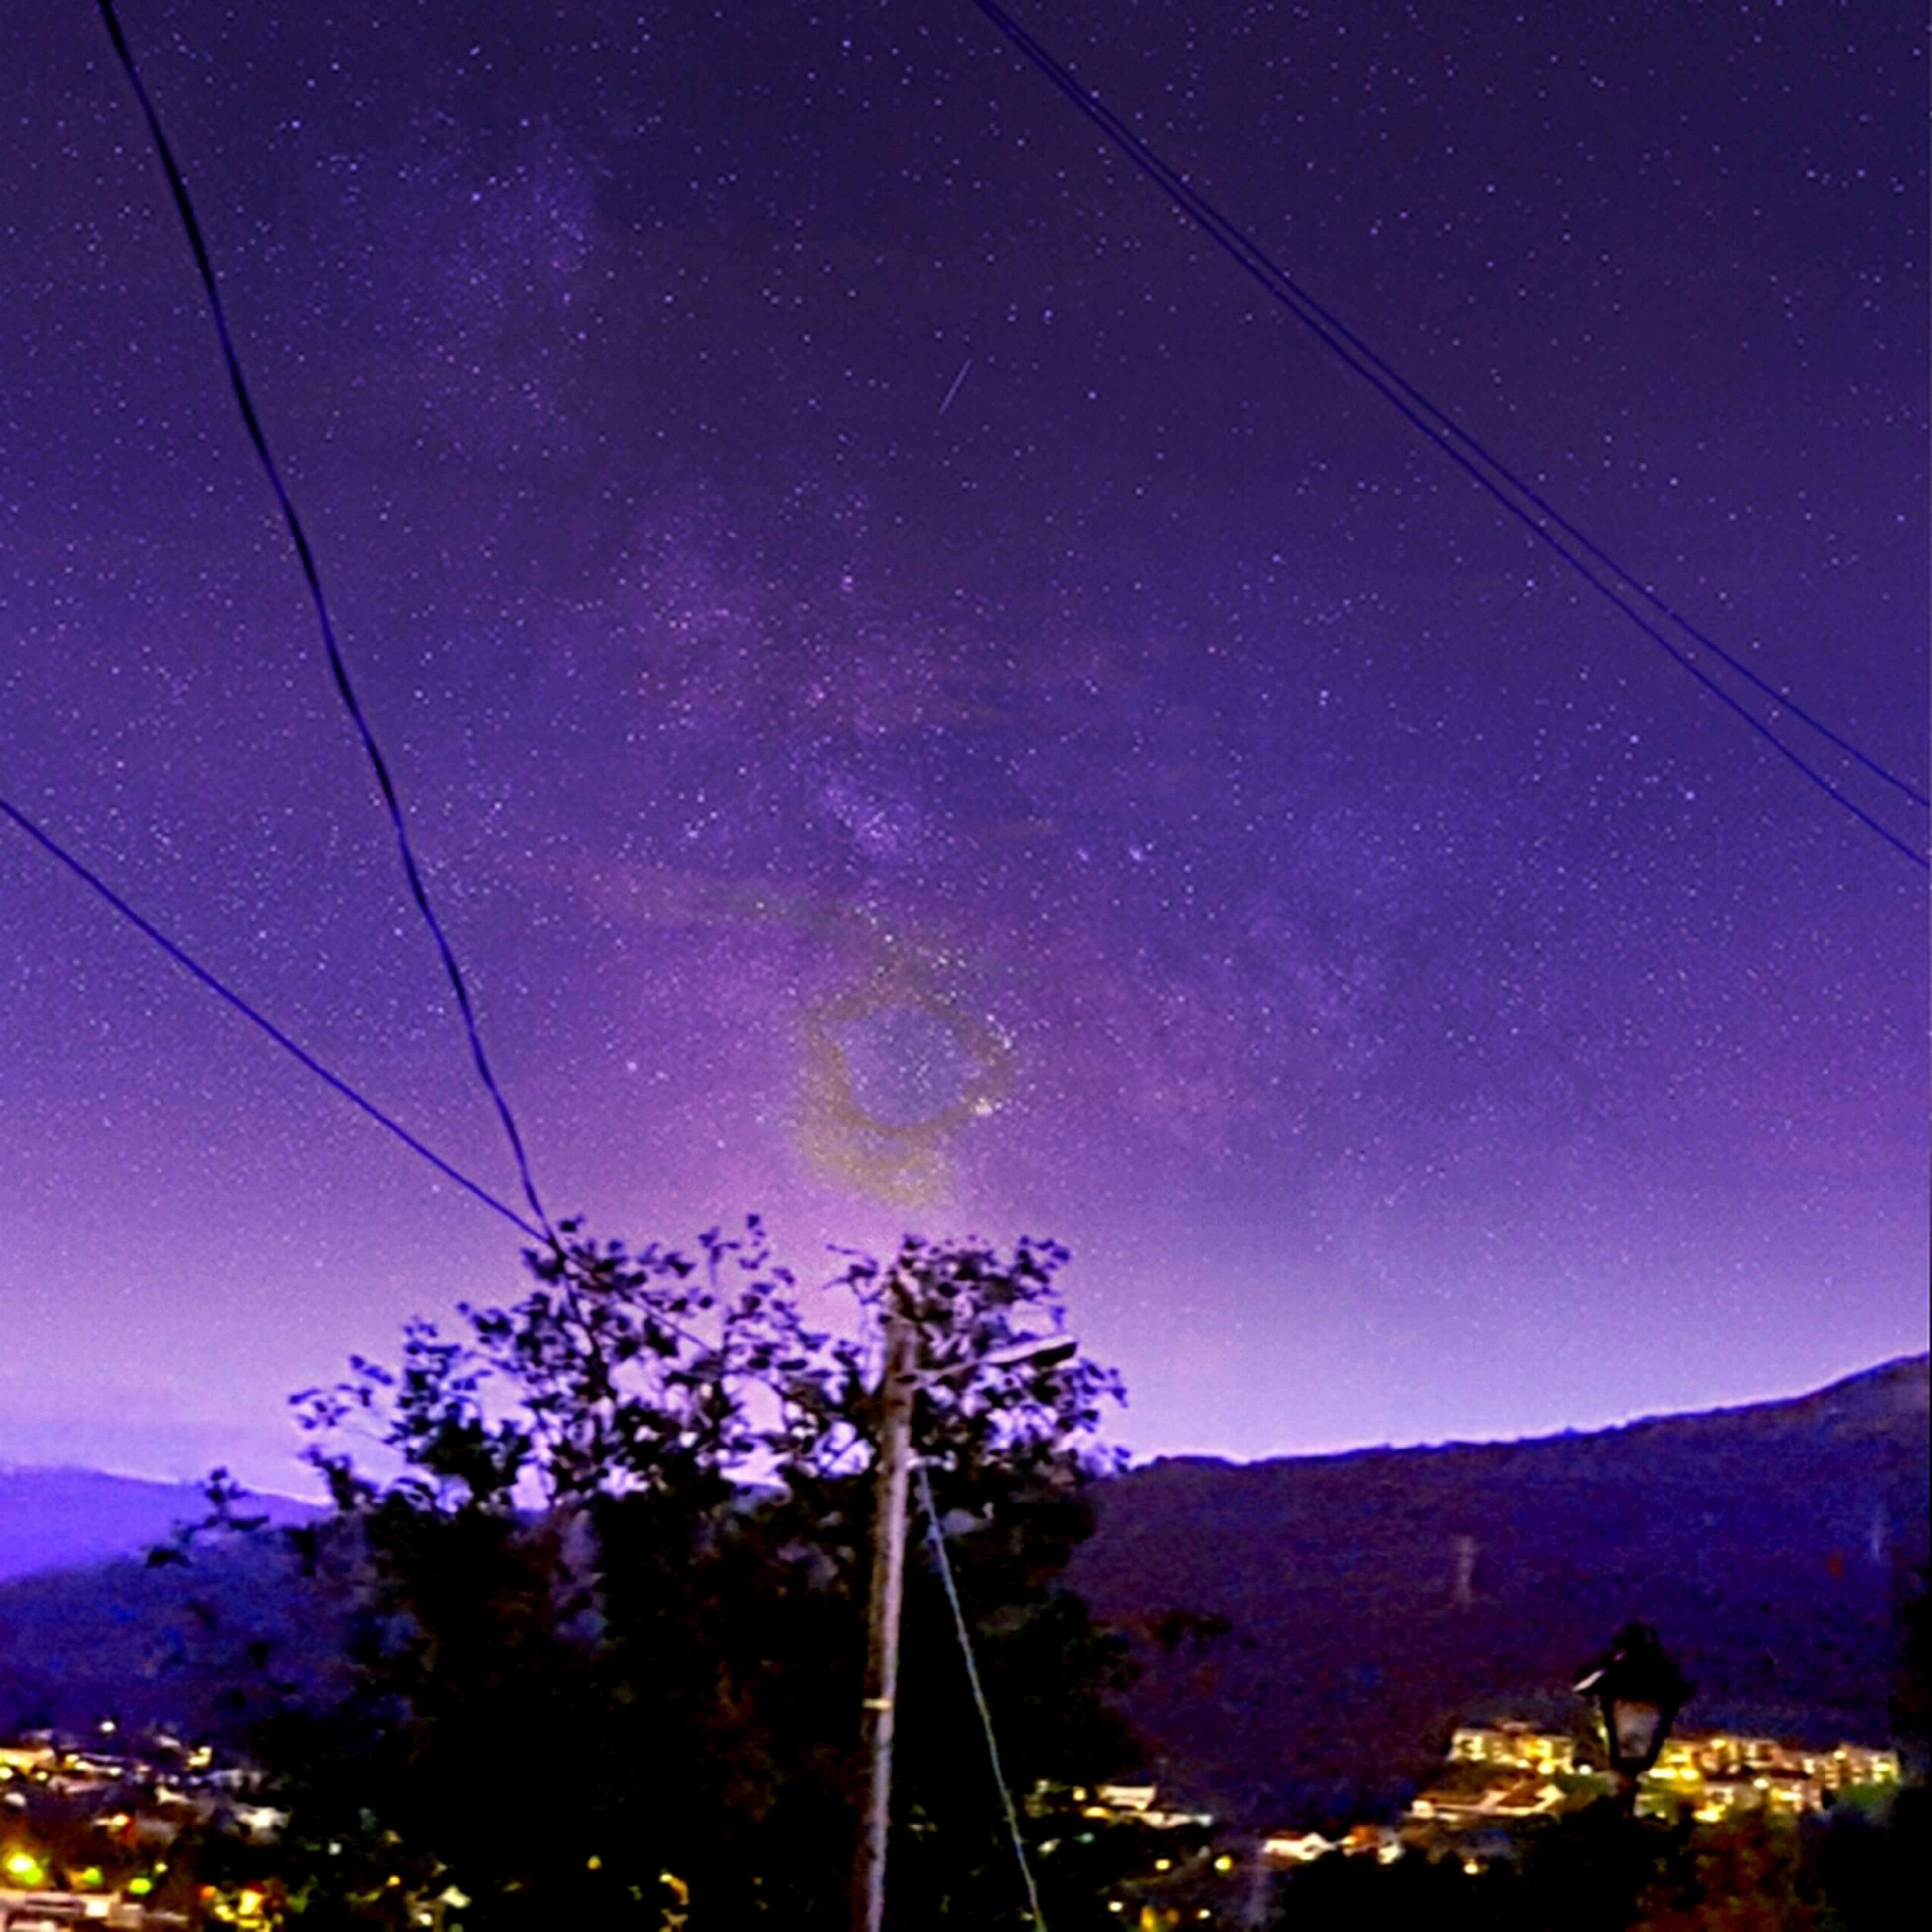 night, illuminated, low angle view, sky, tree, scenics, beauty in nature, astronomy, blue, nature, tranquility, tranquil scene, outdoors, mountain, infinity, dark, landscape, idyllic, no people, majestic, cable